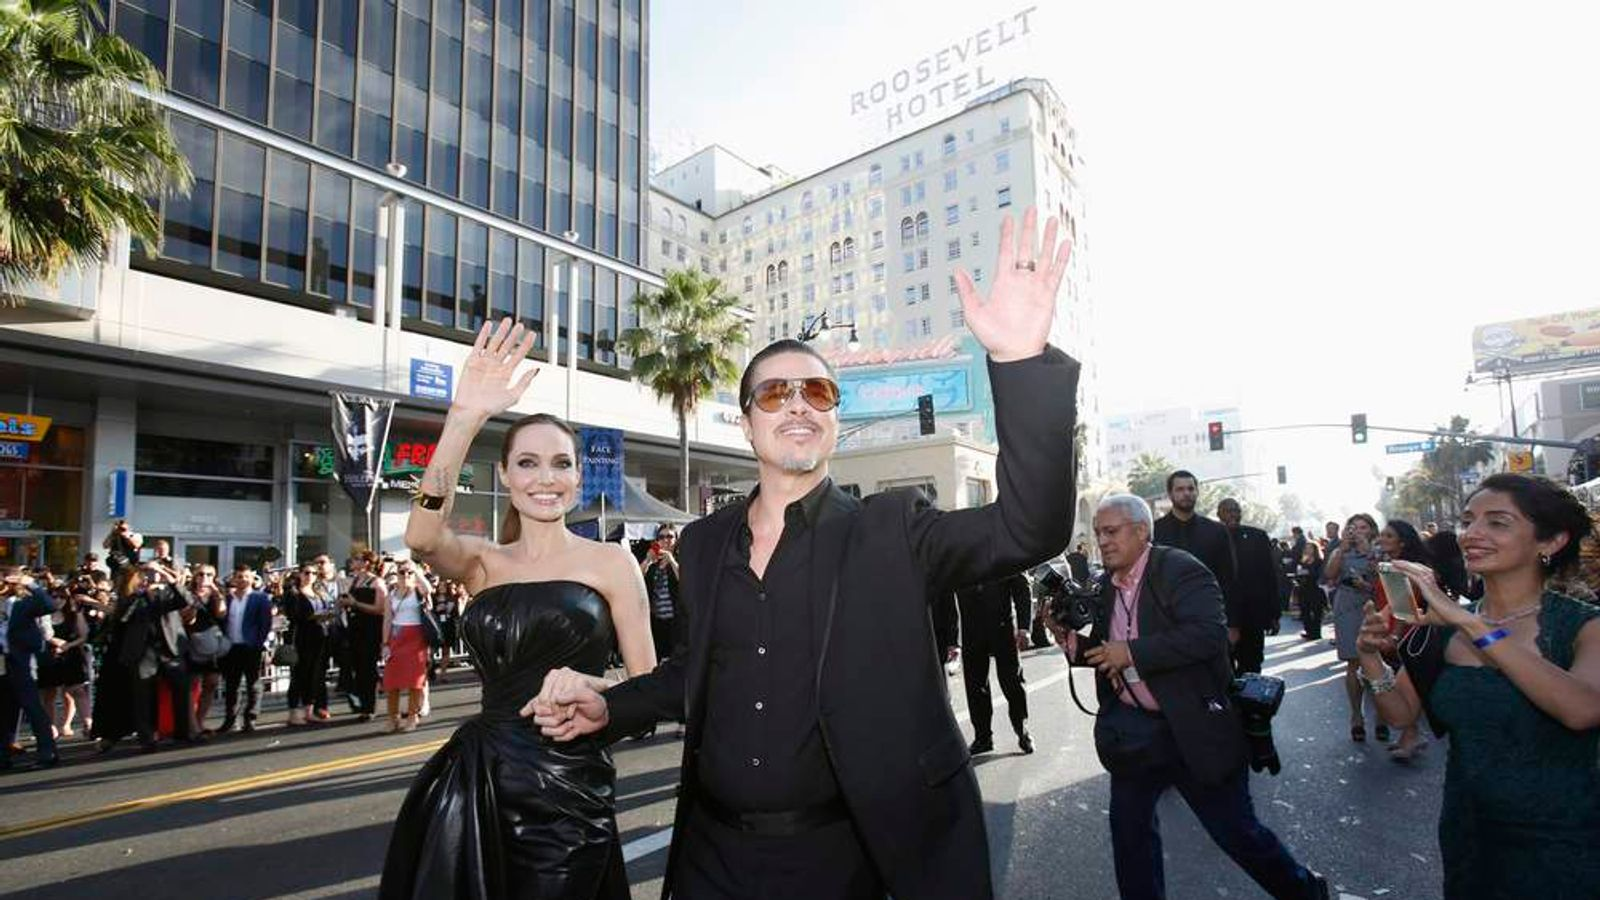 Brad Pitt is attacked on the red carpet at the premiere of Maleficent.